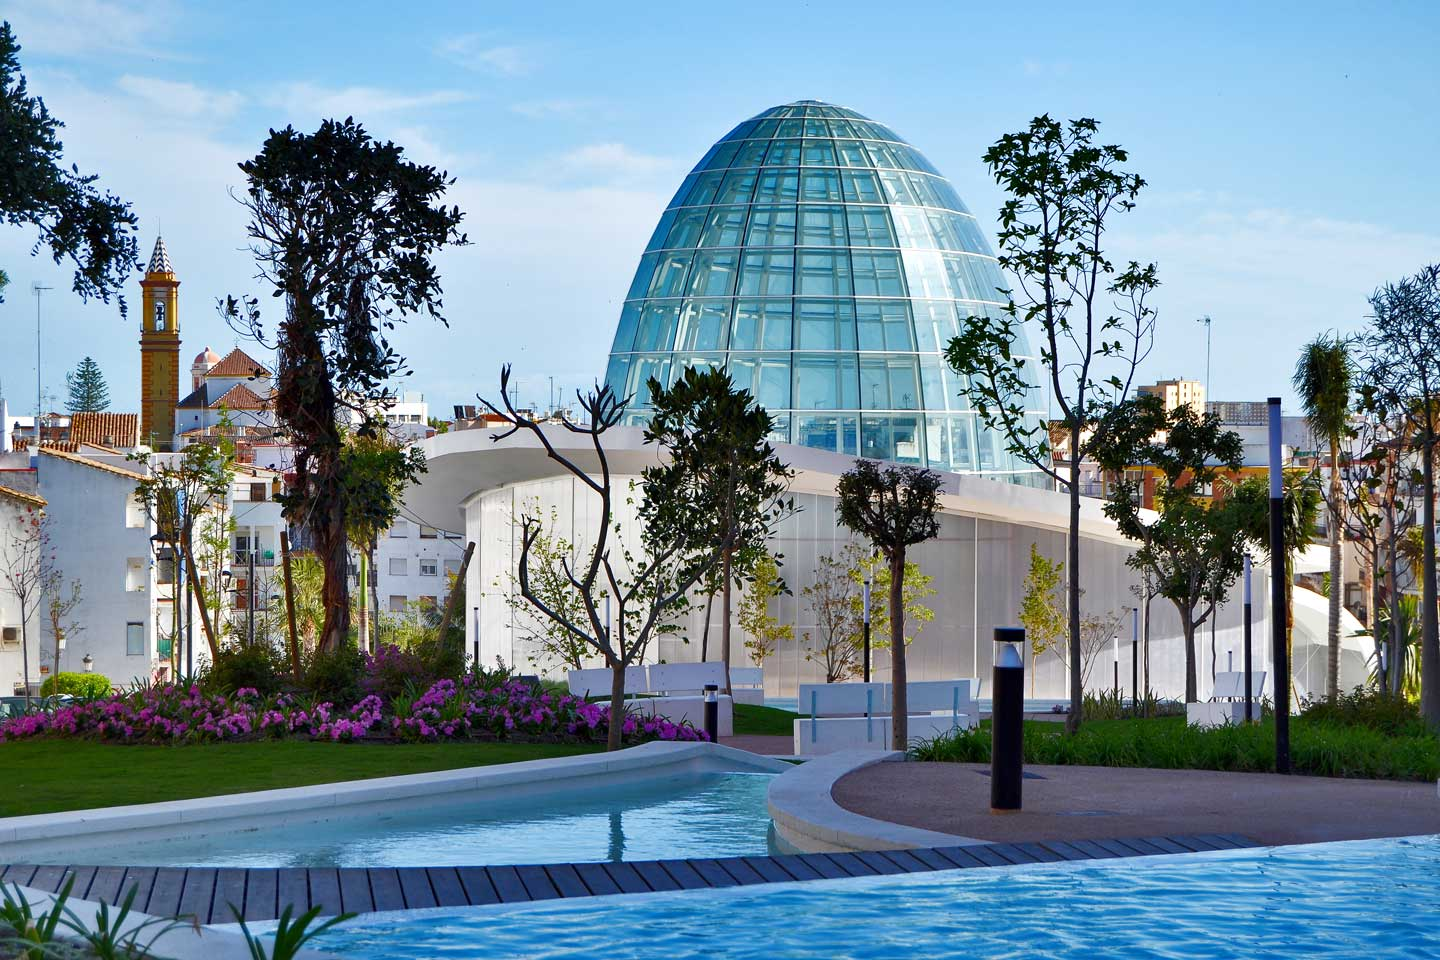 Things to Do in Estepona